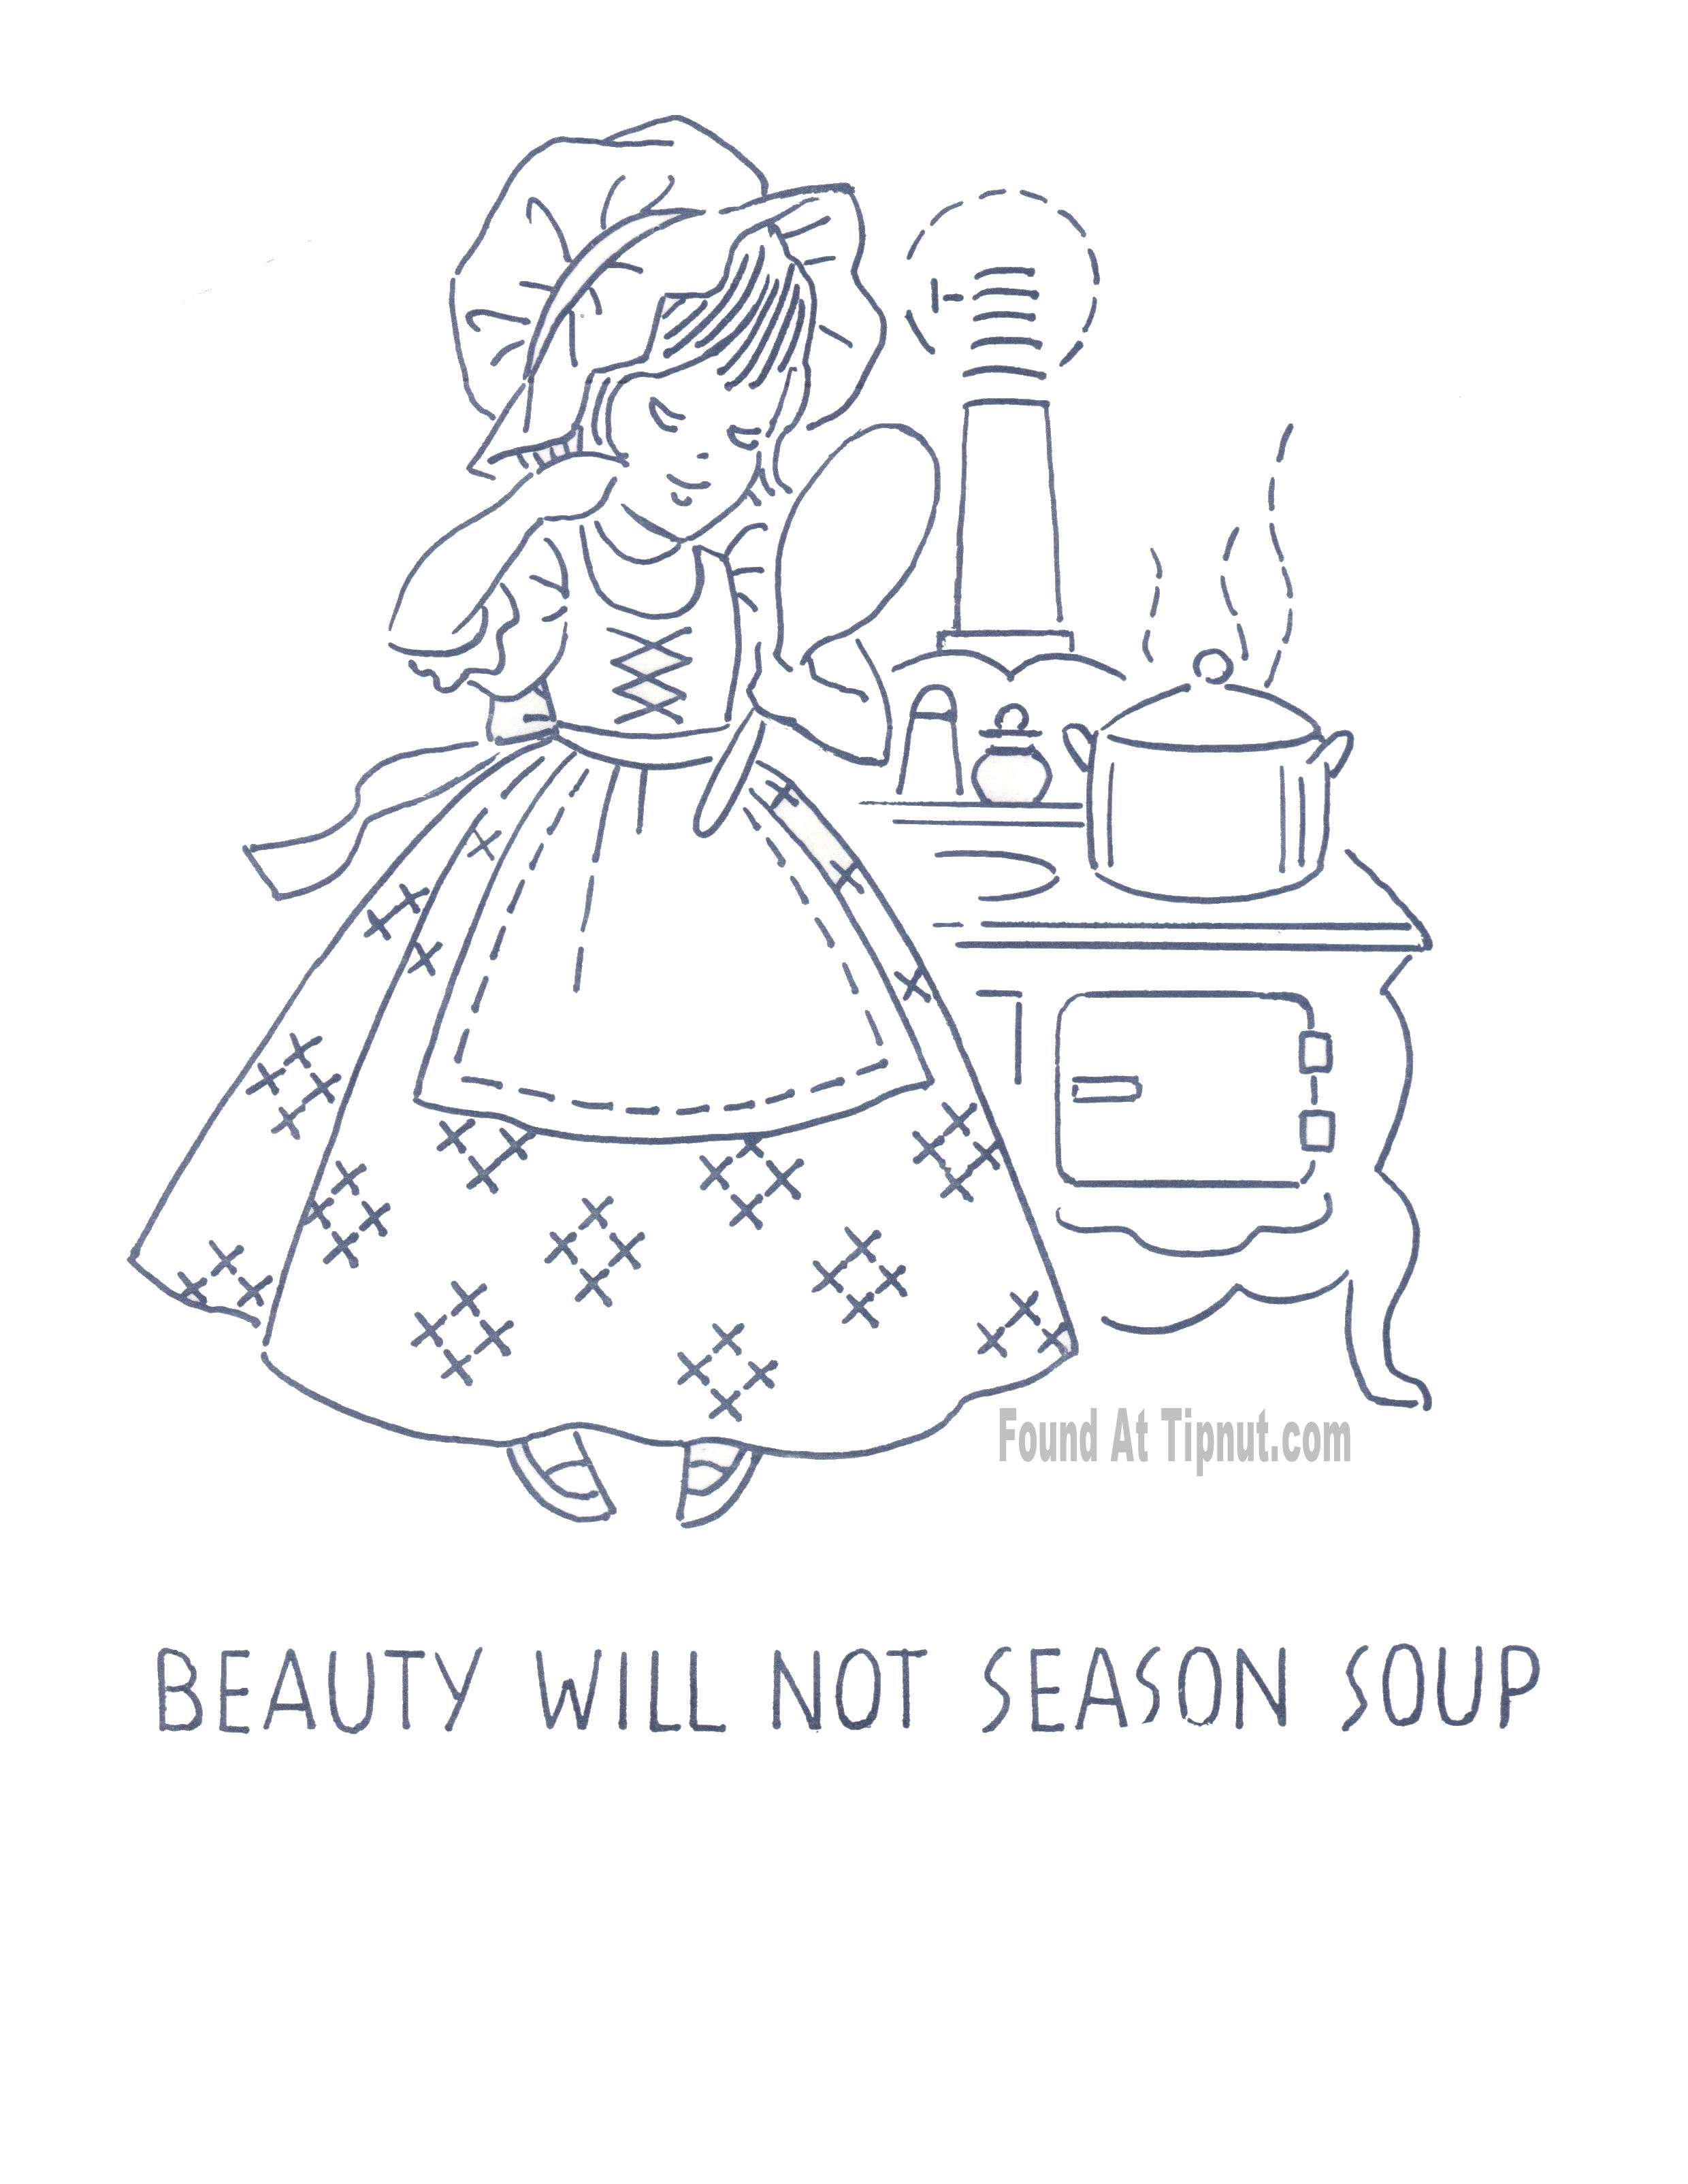 Kitchen Towel Embroidery Patterns Kitchen Proverbs Embroidery Patterns Complete Set Tipnut